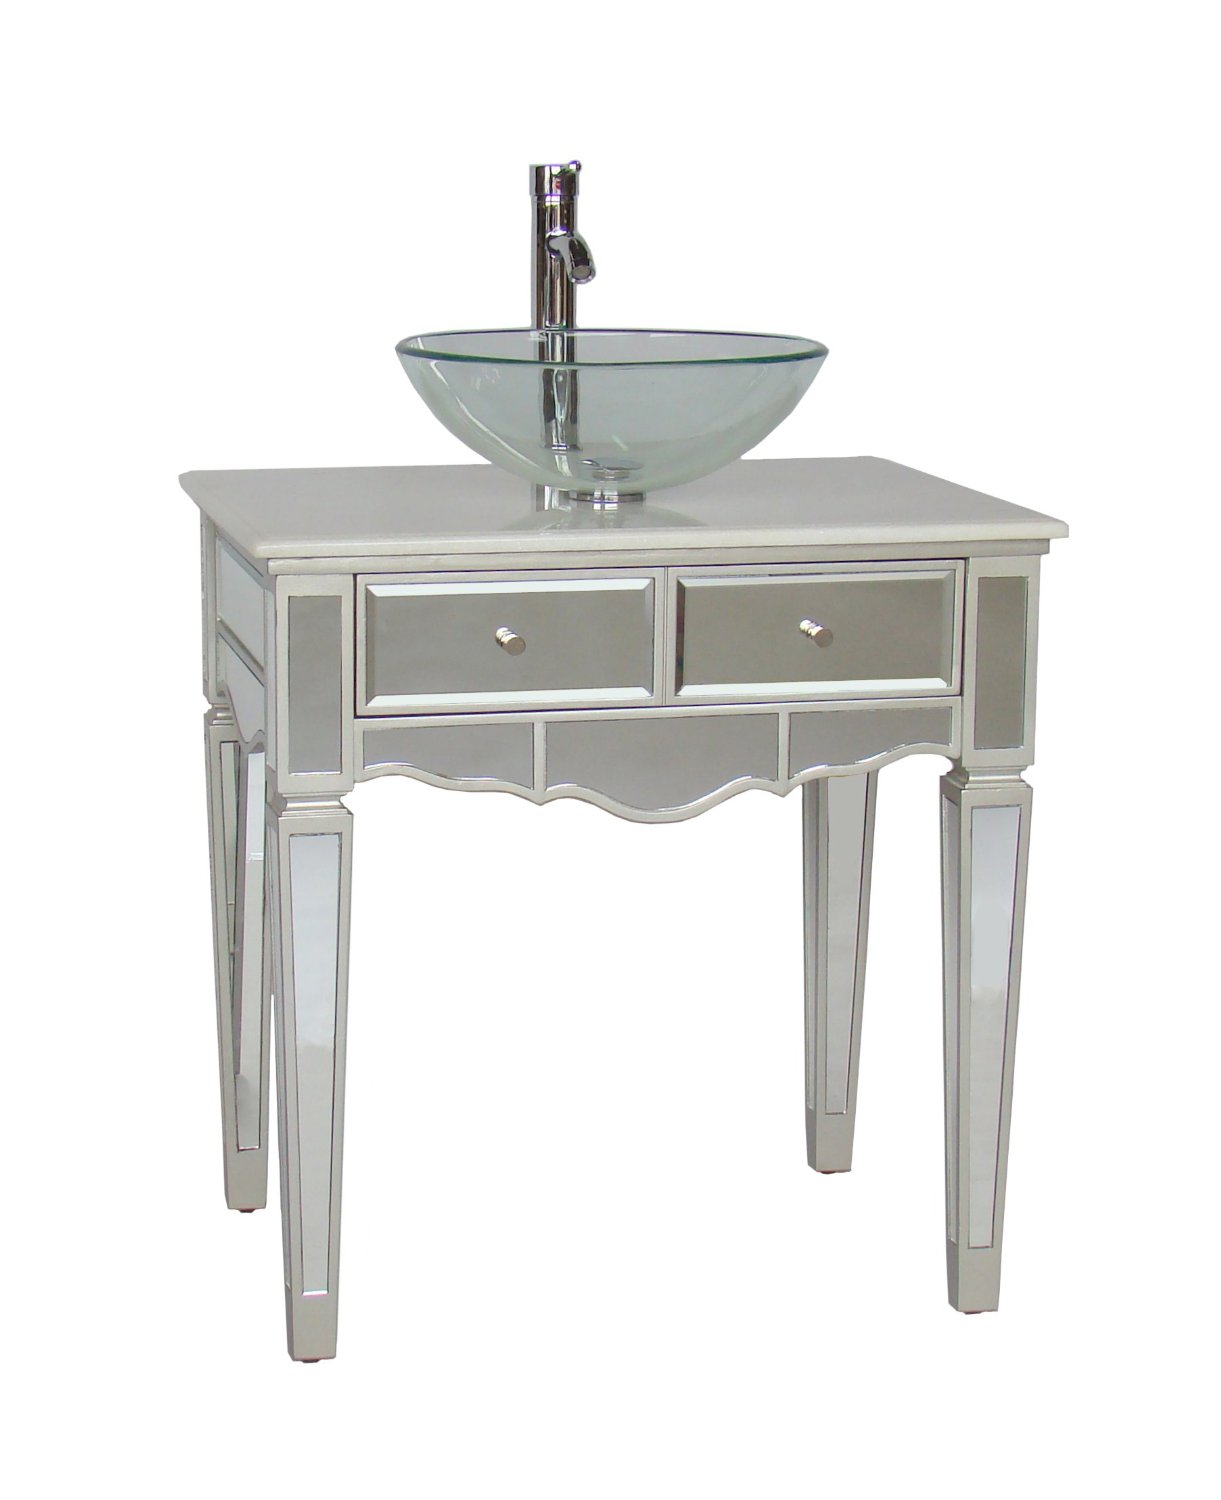 bowl sinks for bathrooms with vanity adelina 30 inch mirrored vessel sink bathroom vanity 25169